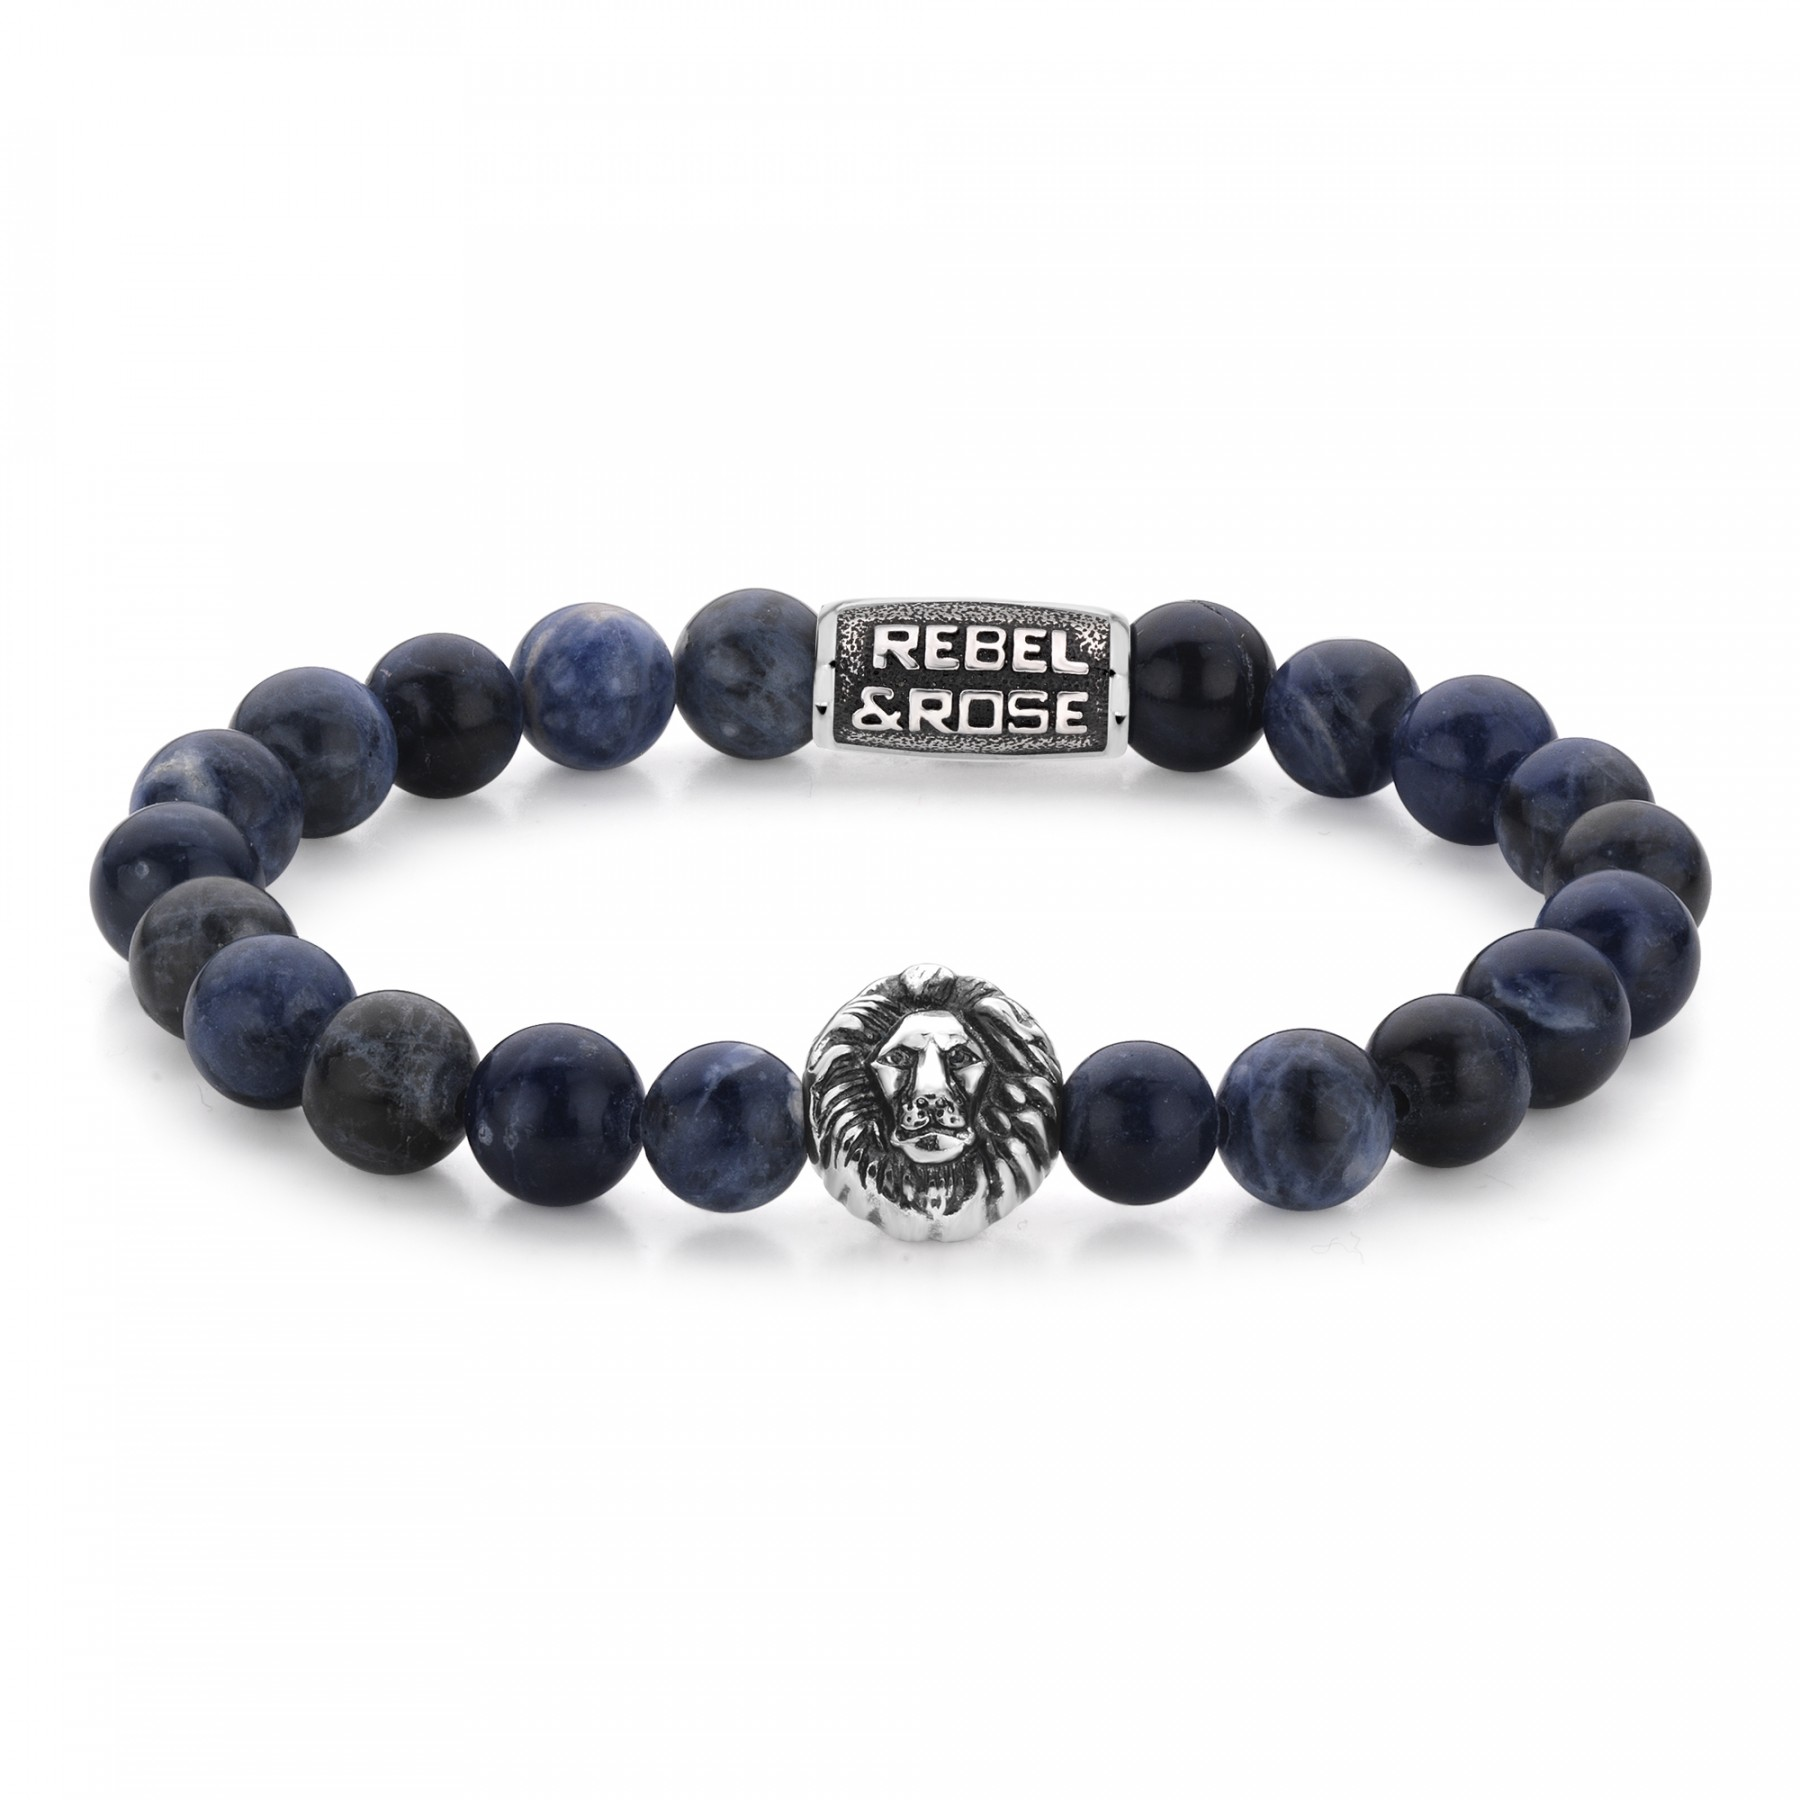 Rebel and Rose RR-8L030-S-XL Armband Midnight Blue XL 8mm 21.0